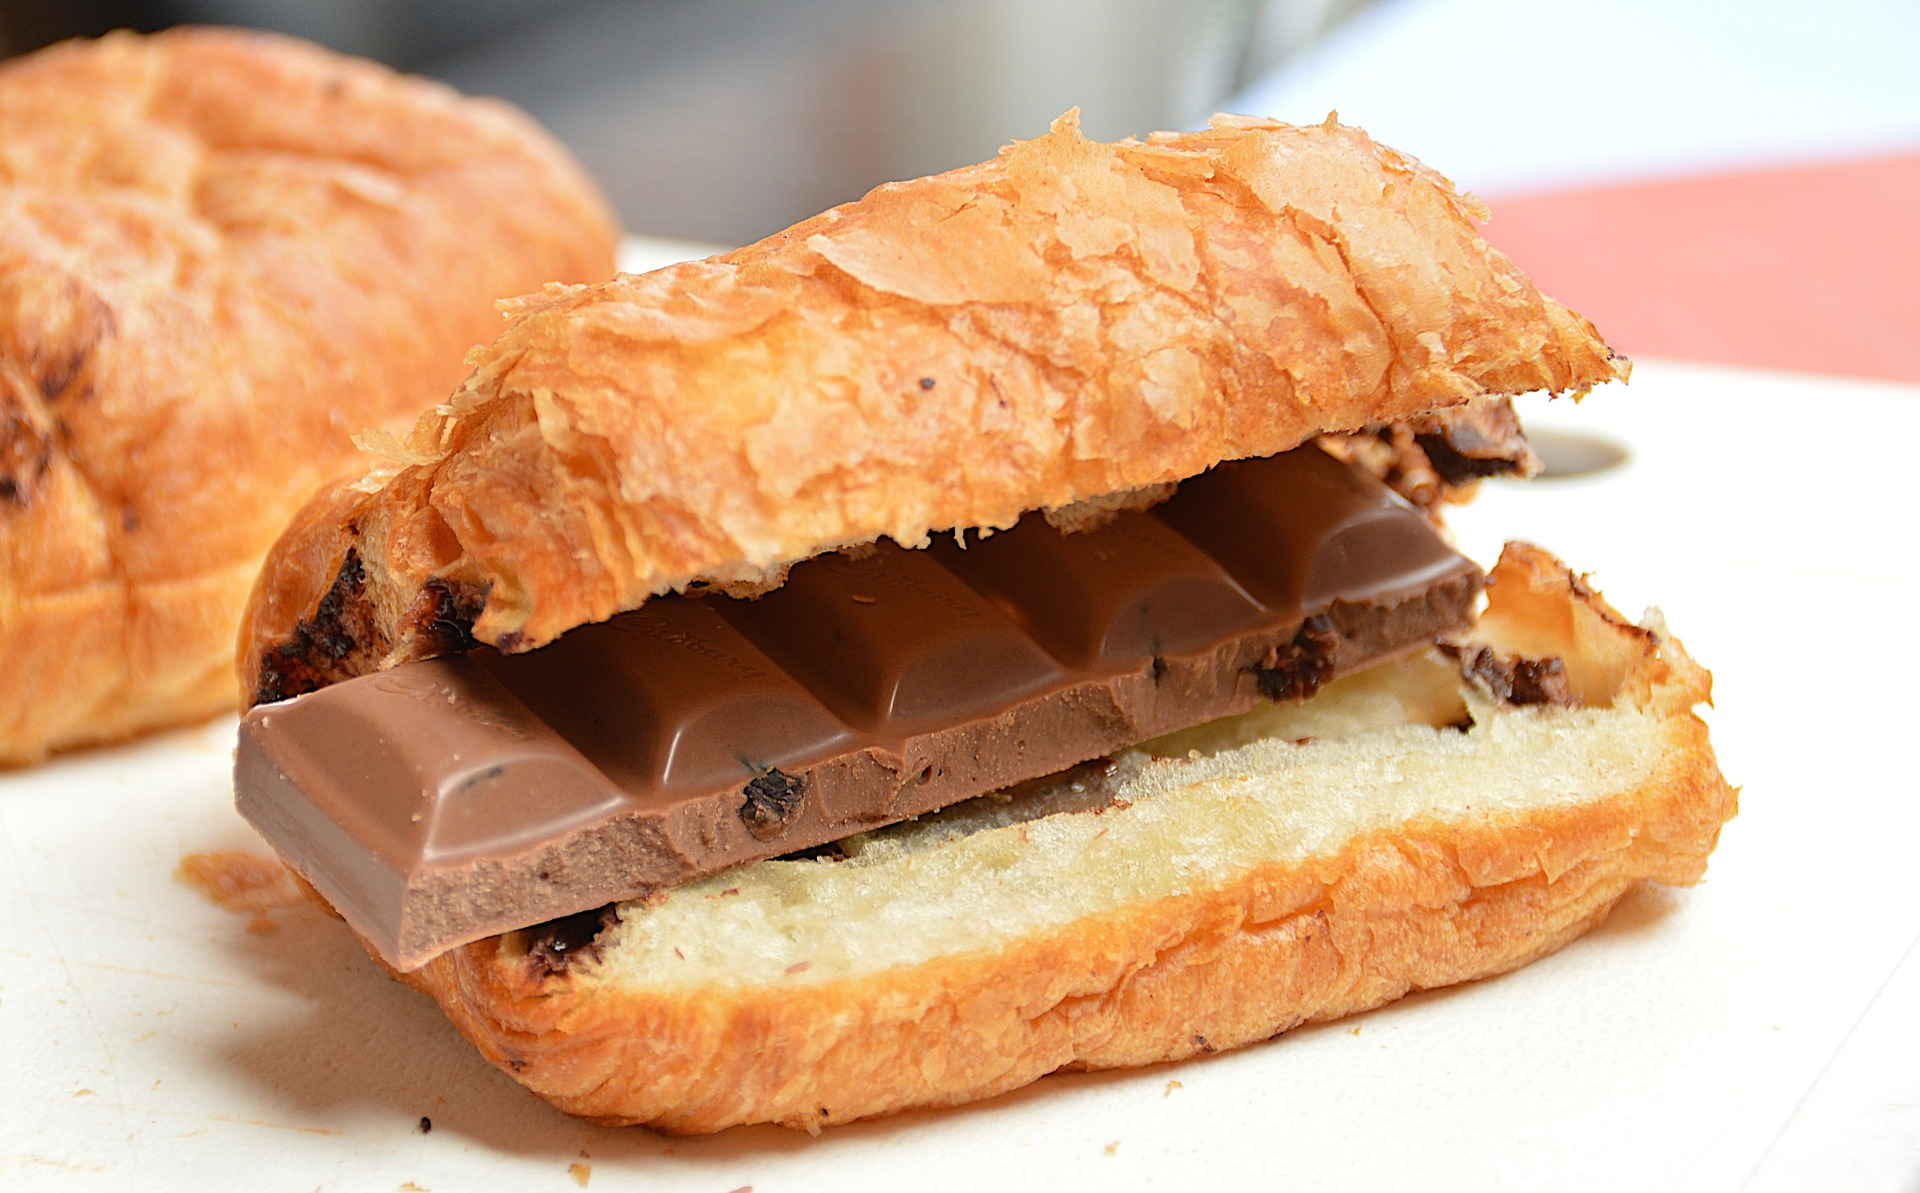 Breakfast for Chocolate Day?